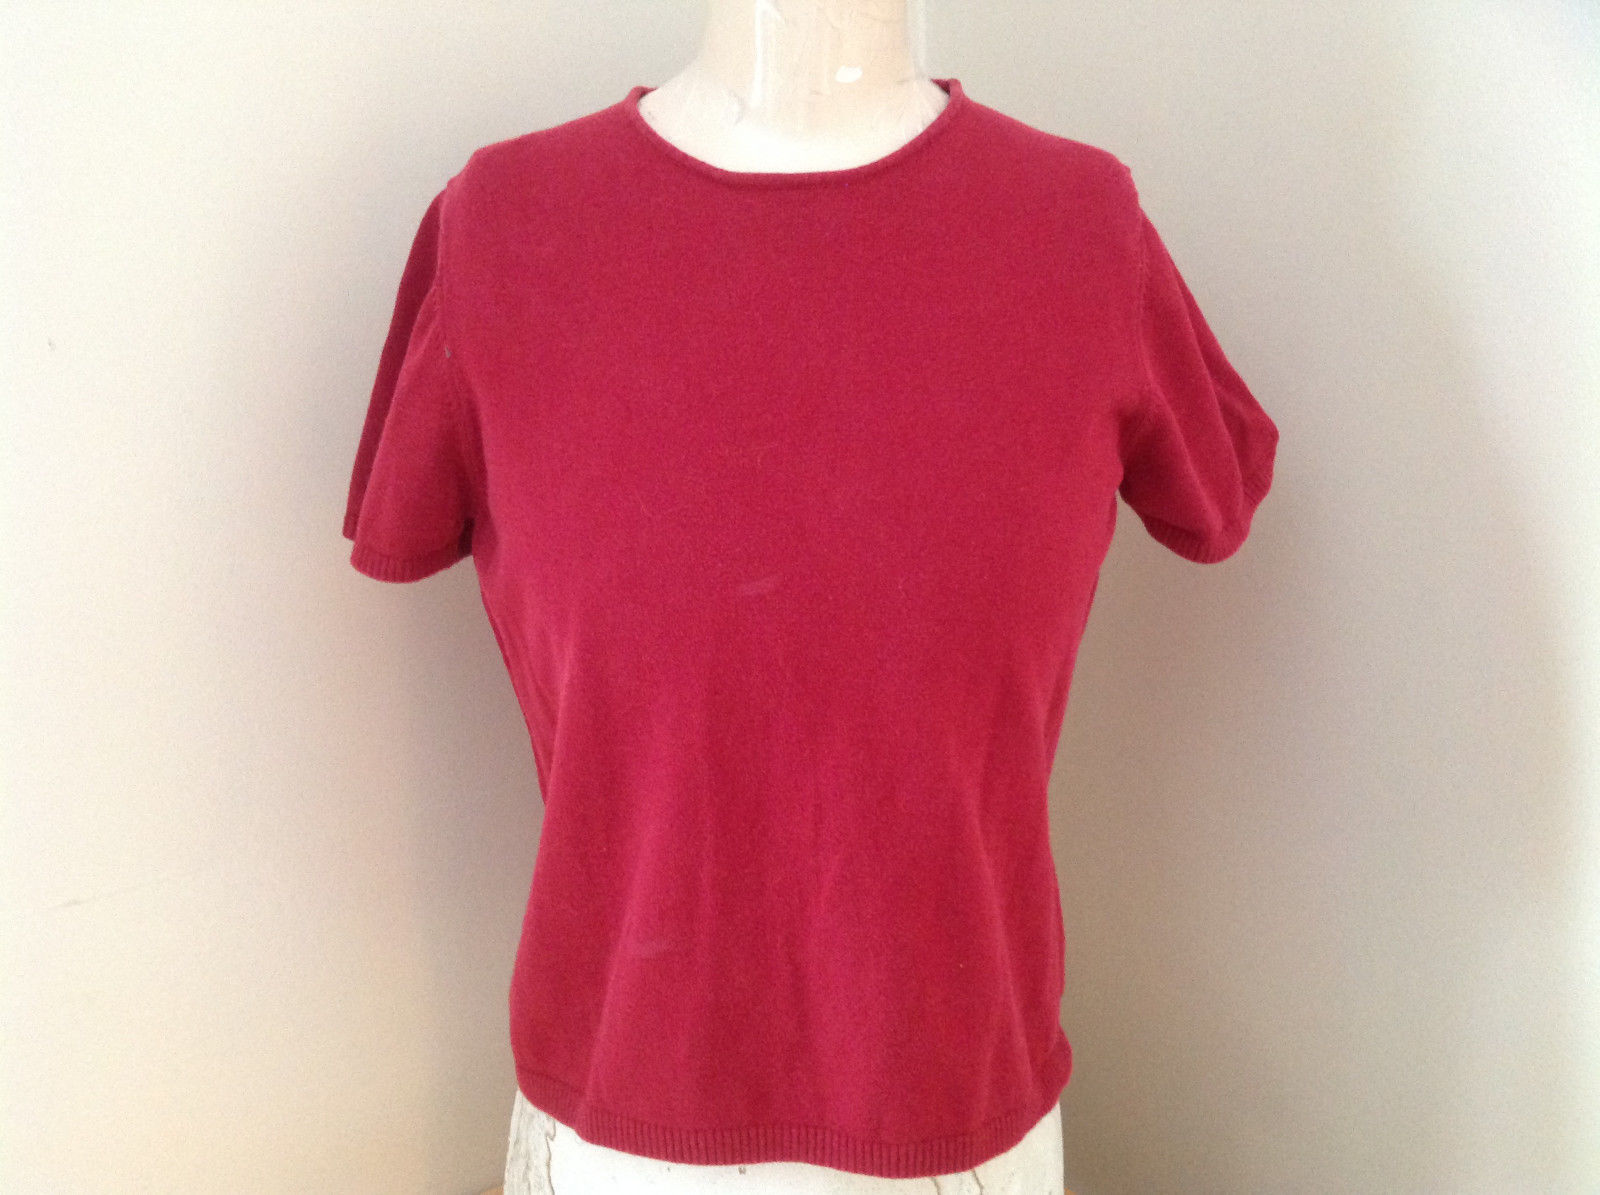 Lands End Red Crew Neck Short Sleeve Shirt Sweater-like Size Medium